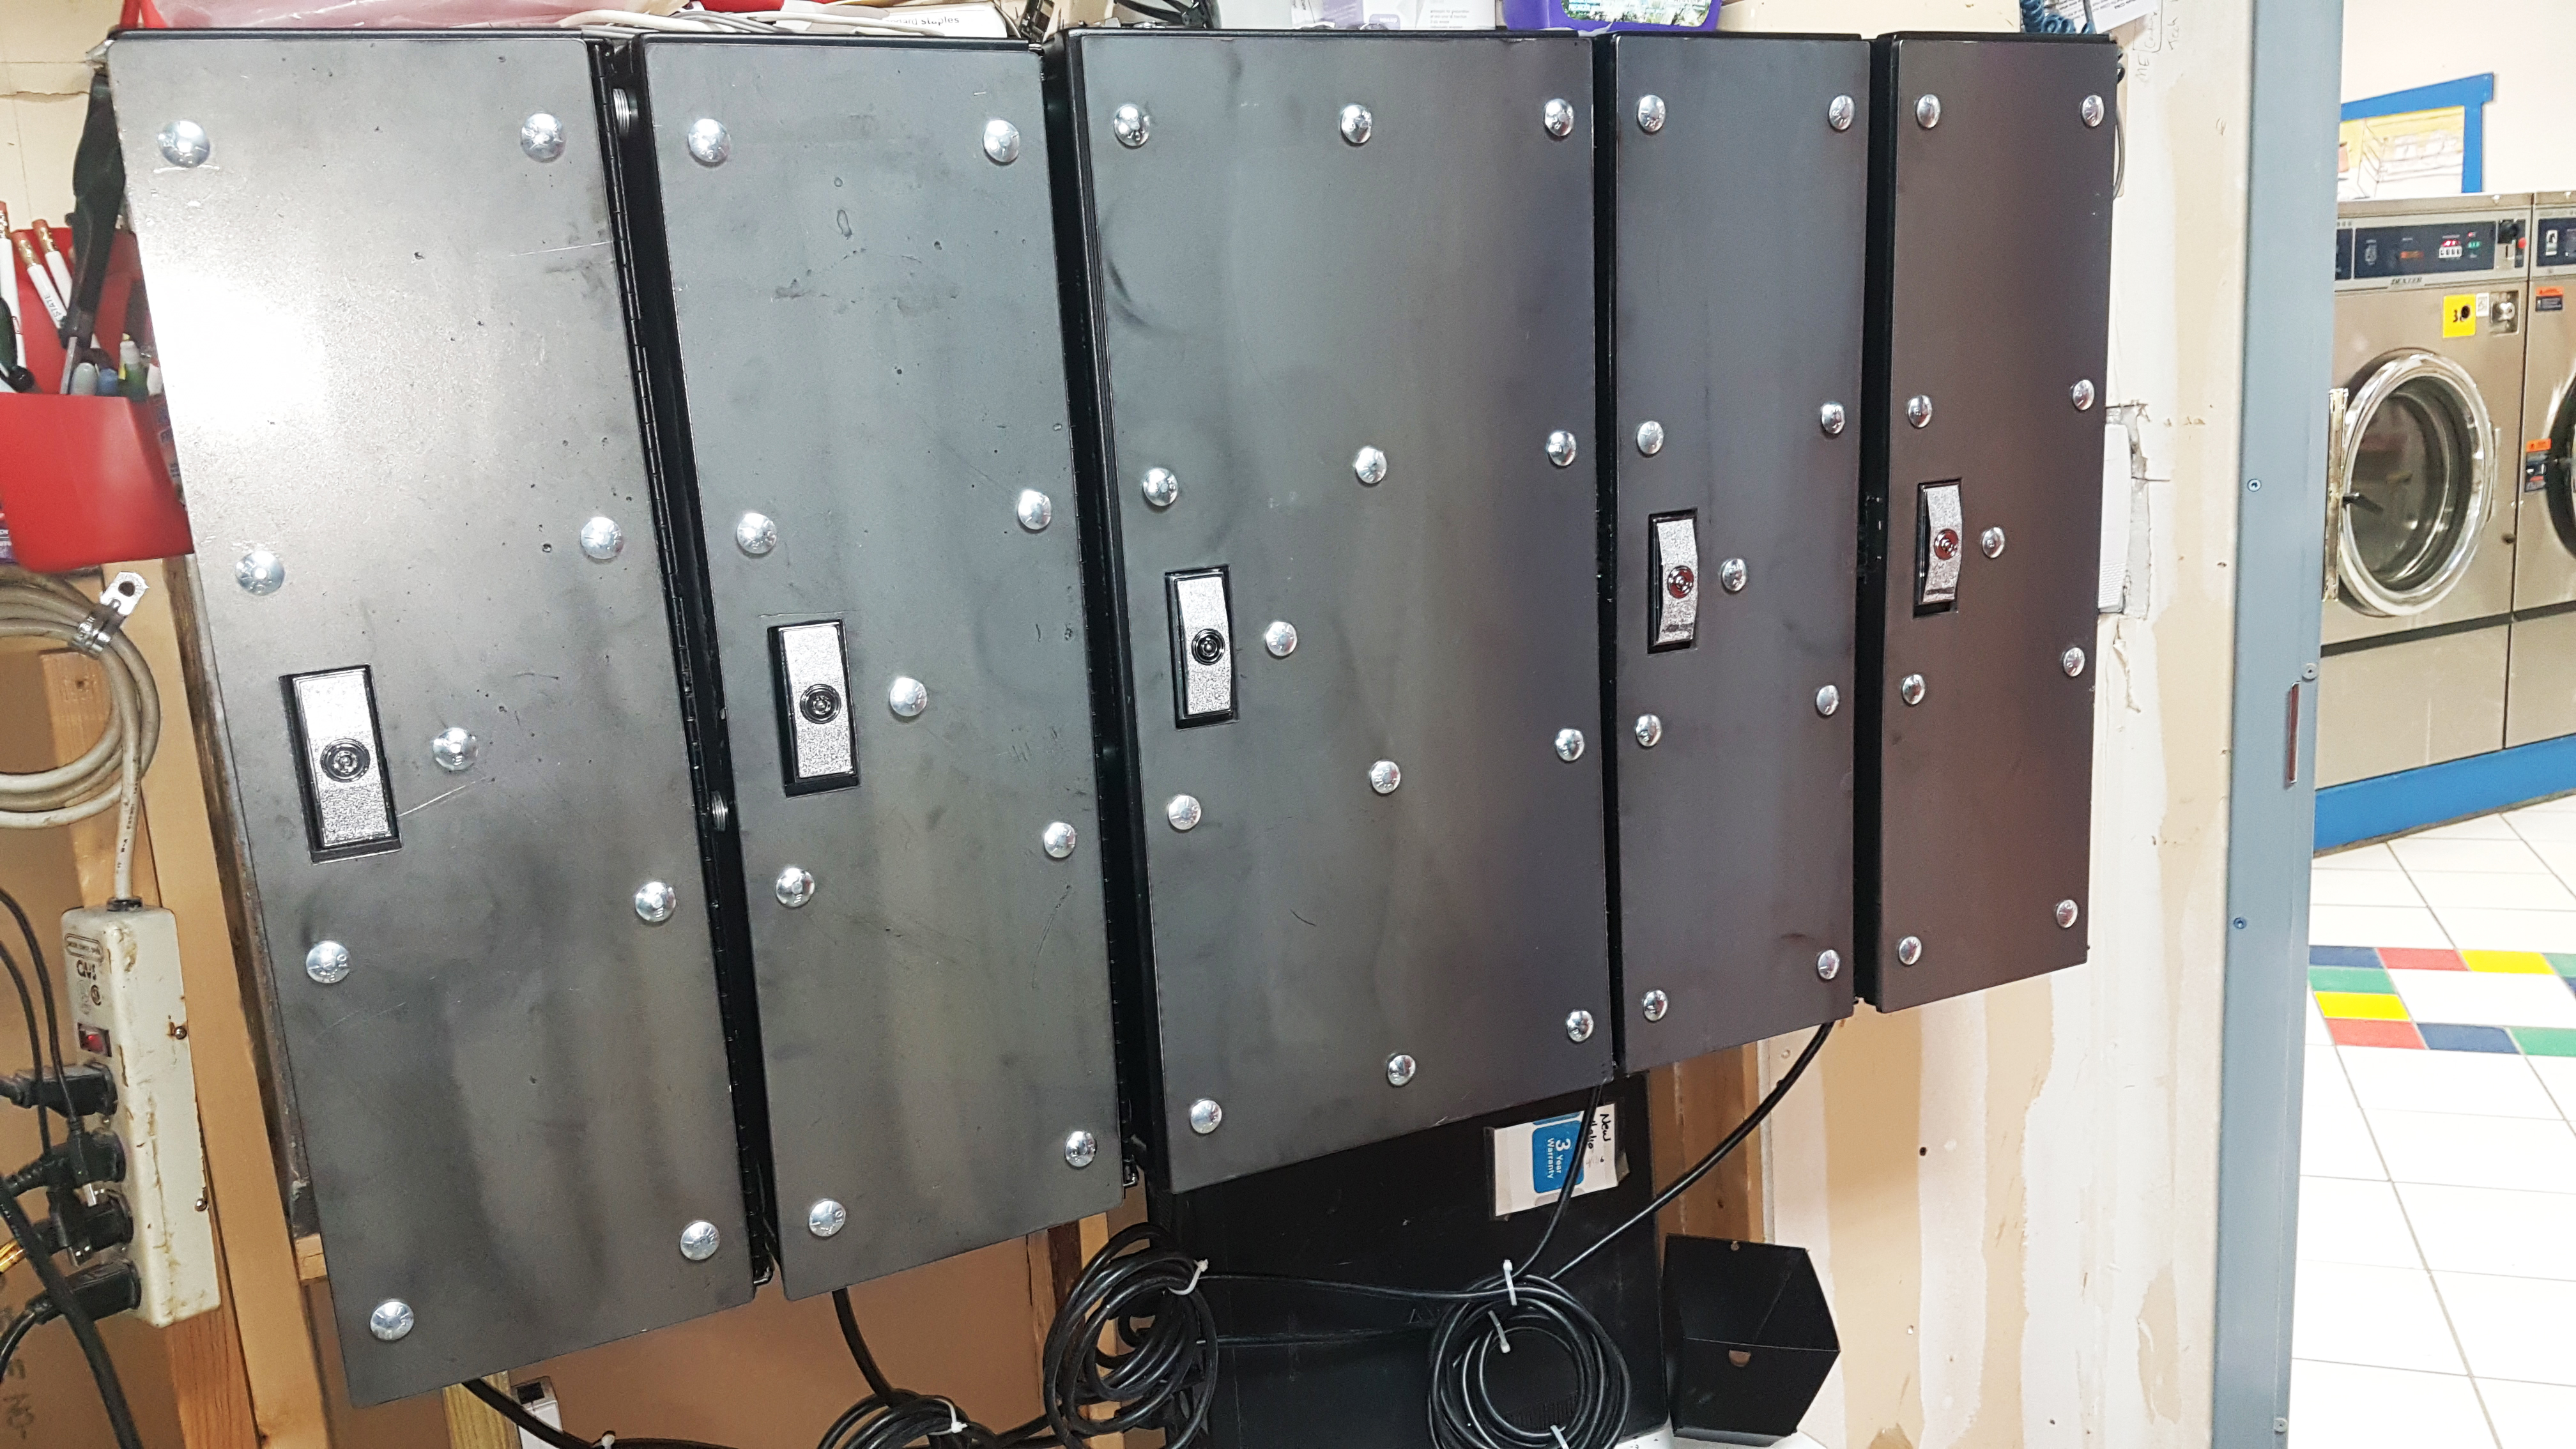 Multiple Changer Armer plates installed with doors locked